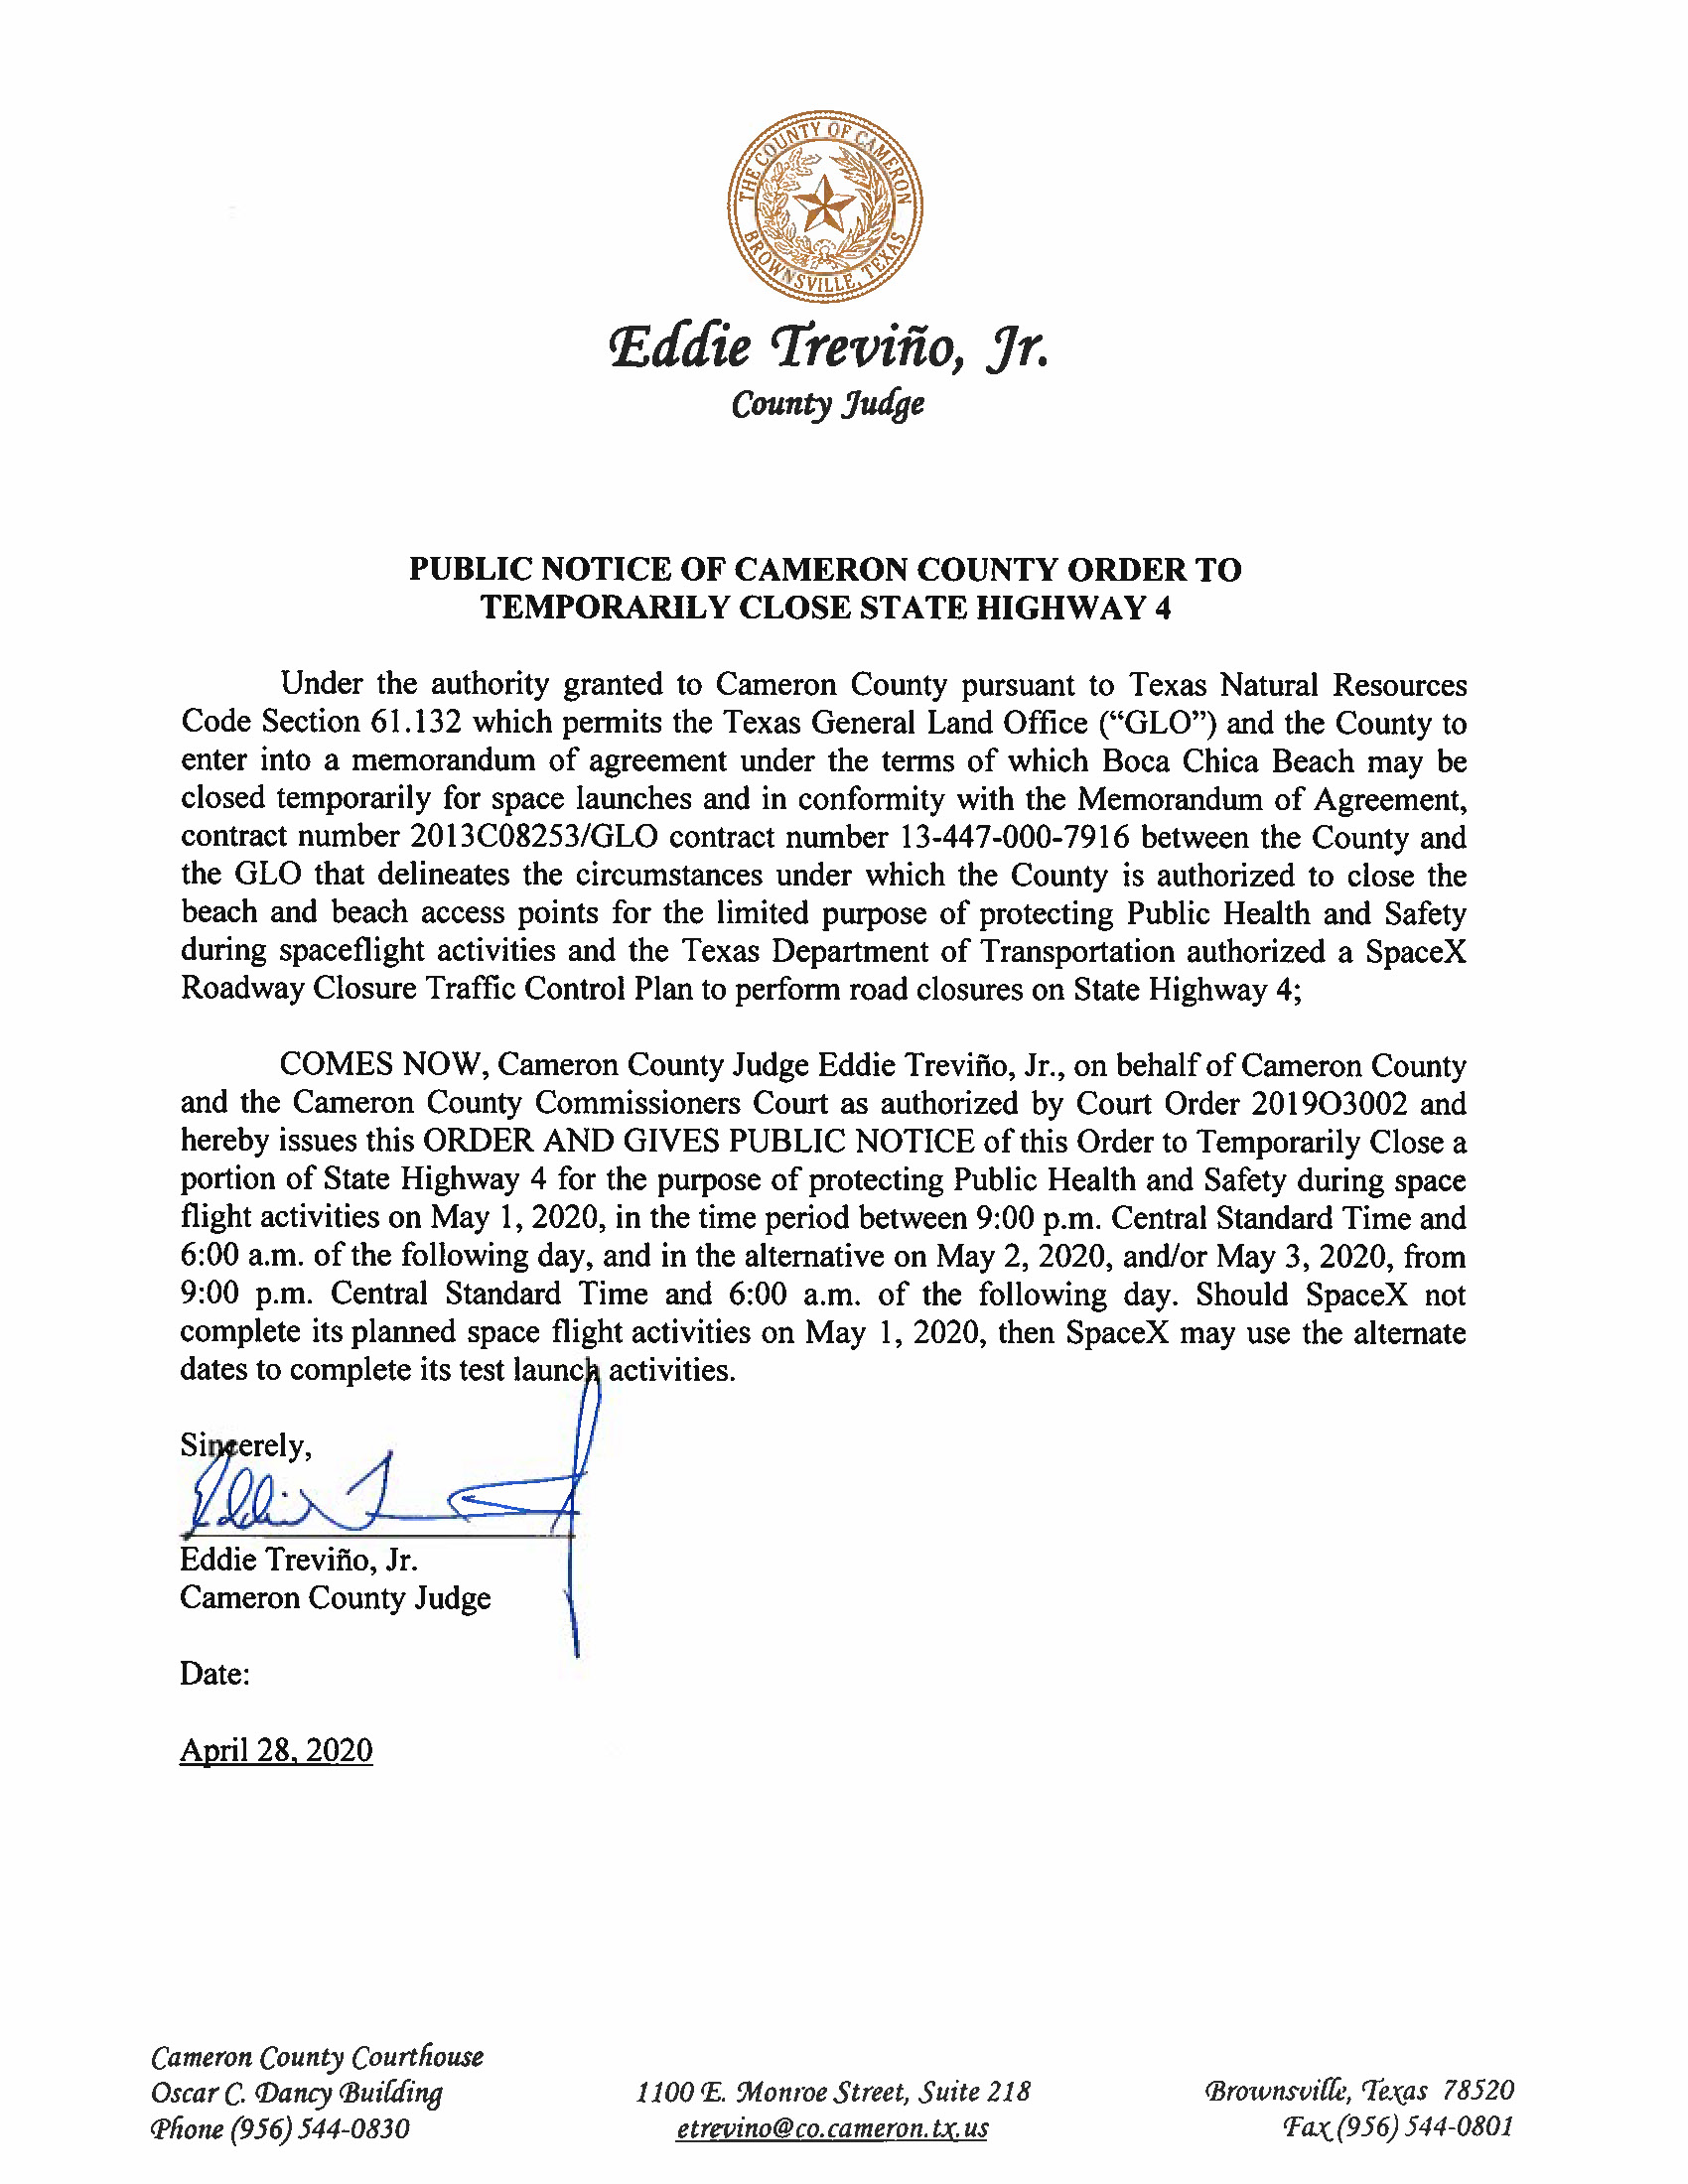 PUBLIC NOTICE OF CAMERON COUNTY ORDER TO TEMP. BEACH CLOSURE AND HWY. 05.01.20.docx Page 1